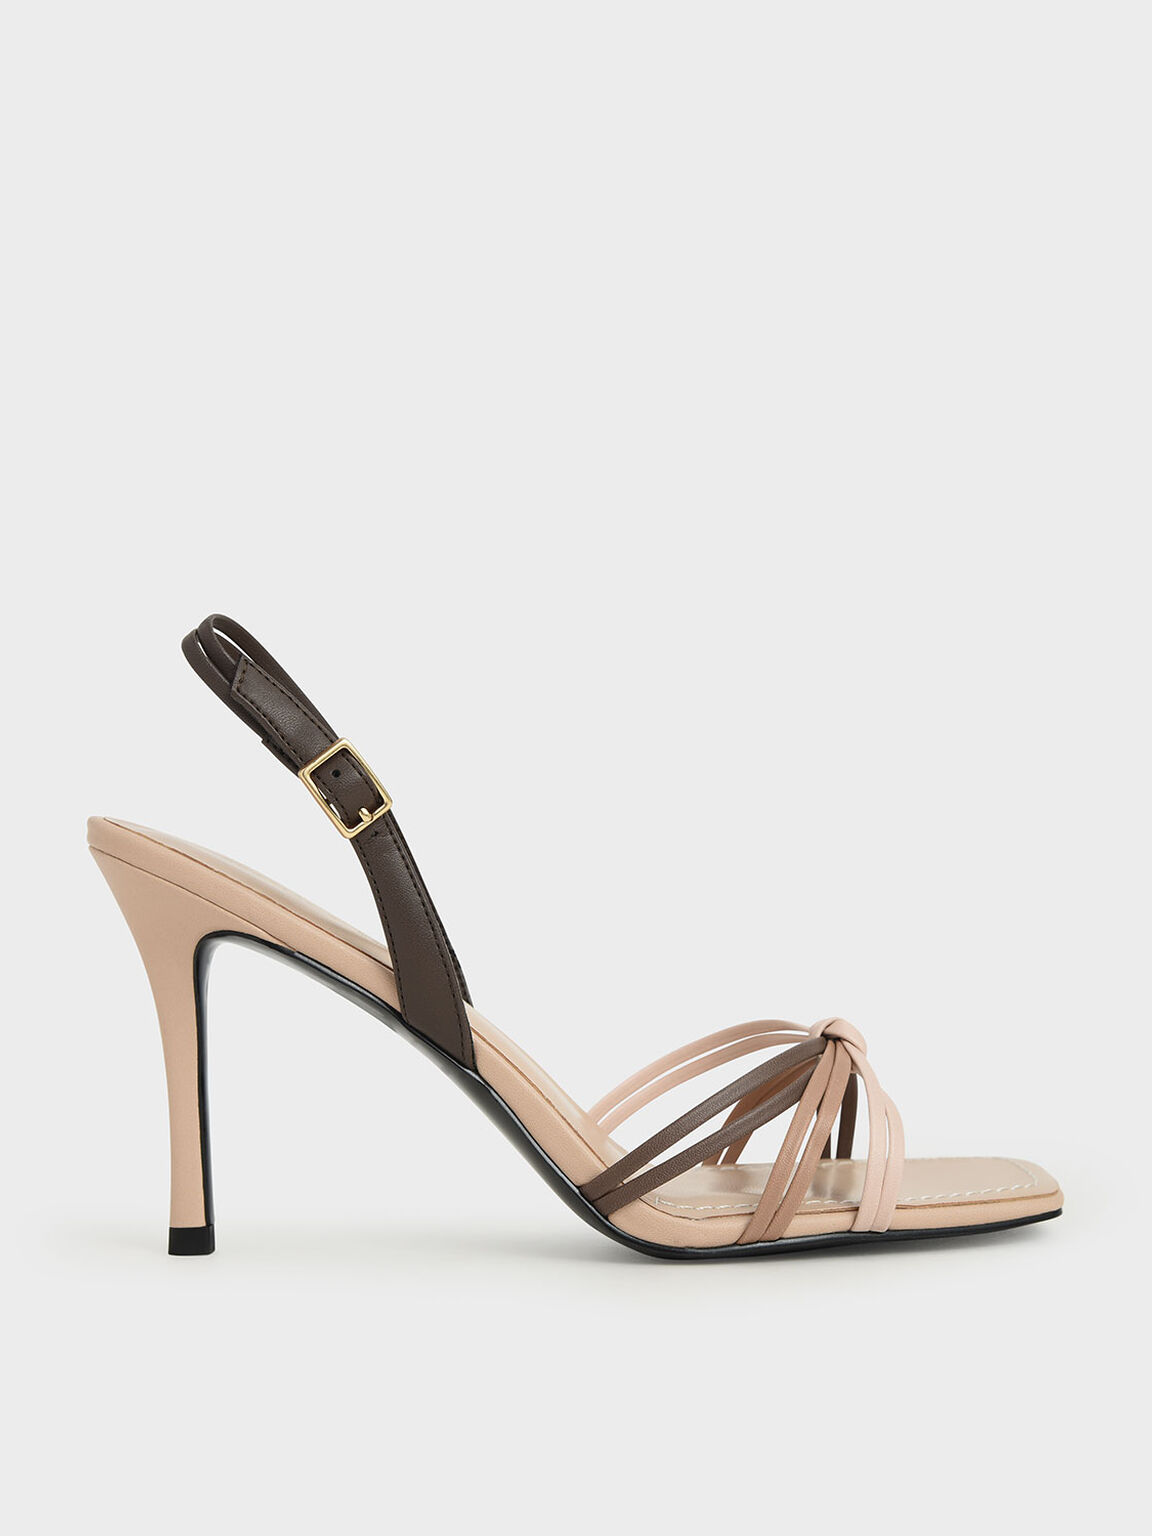 Strappy Slingback Heeled Sandals, Nude, hi-res